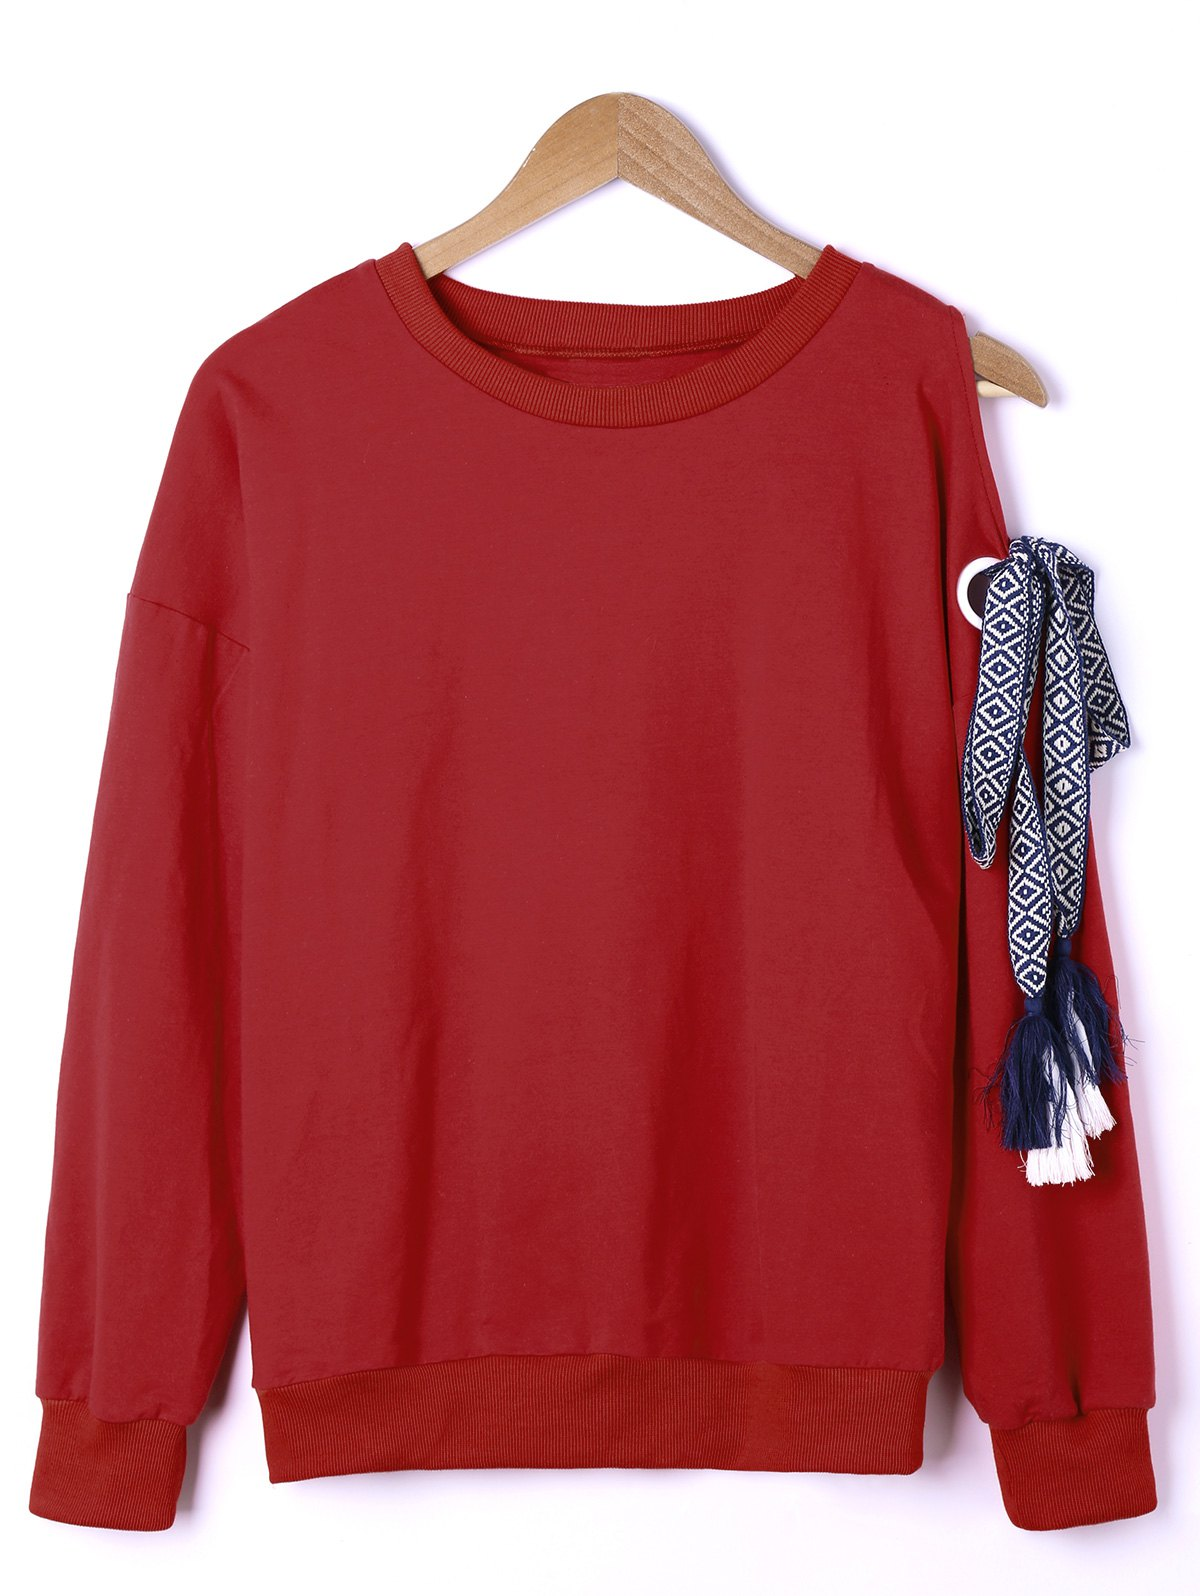 Side Bowknot Embellished Plus Size Sweatshirts - Rouge XL